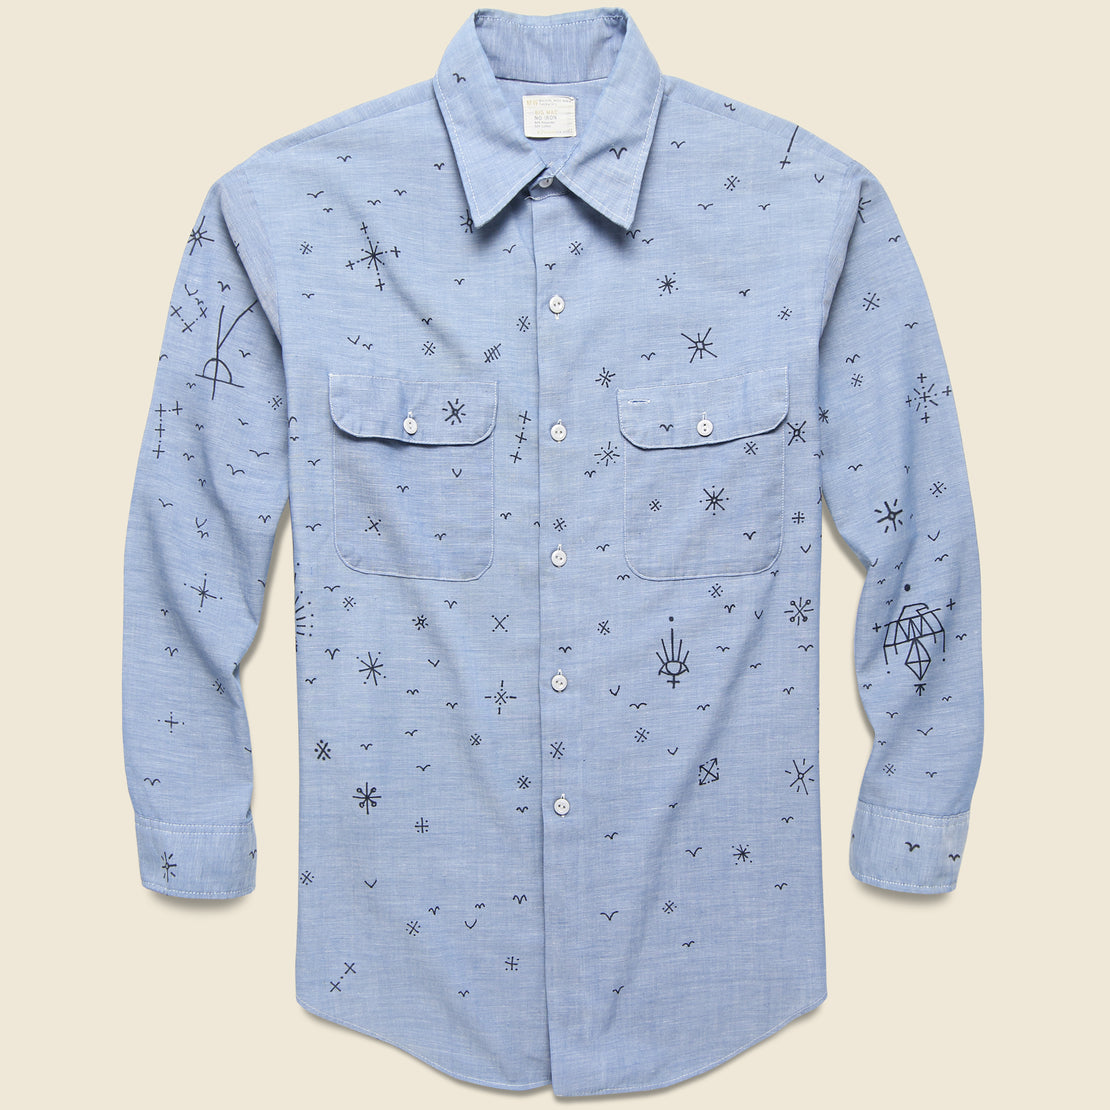 Tom Jean Webb Vintage Chambray Selvedge Shirt - Icons